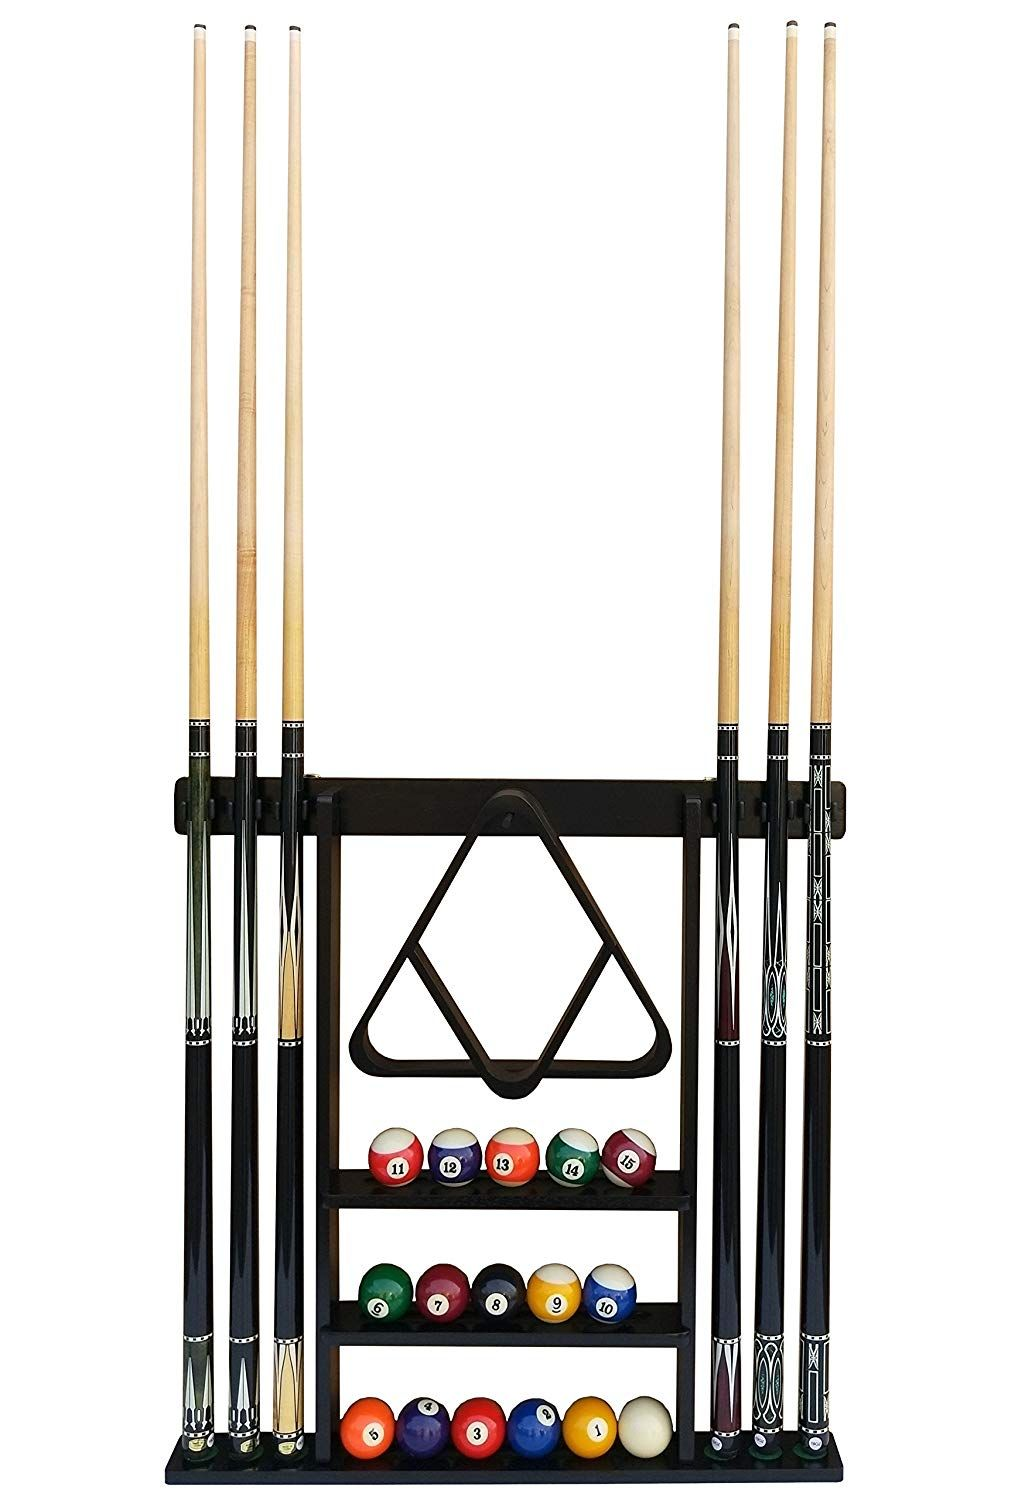 Amazon Com Flintar Wall Cue Rack Stylish Premium Billiard Pool Cue Stick Holder Made Of Solid Hardwood New Pool Cue Rack Pool Table Accessories Cue Stick